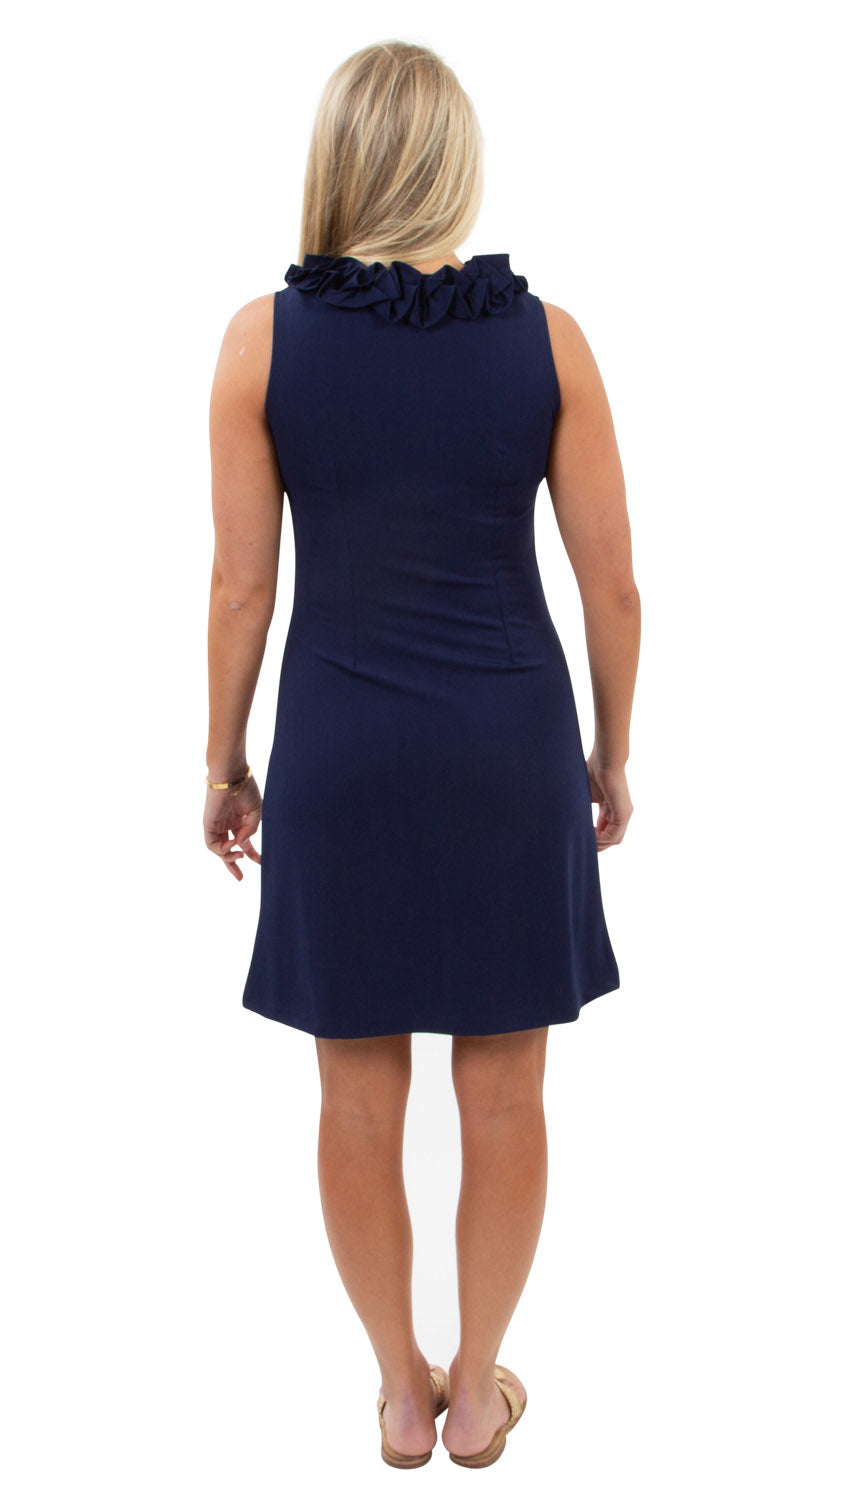 Cricket Sleeveless Dress - Solid Navy